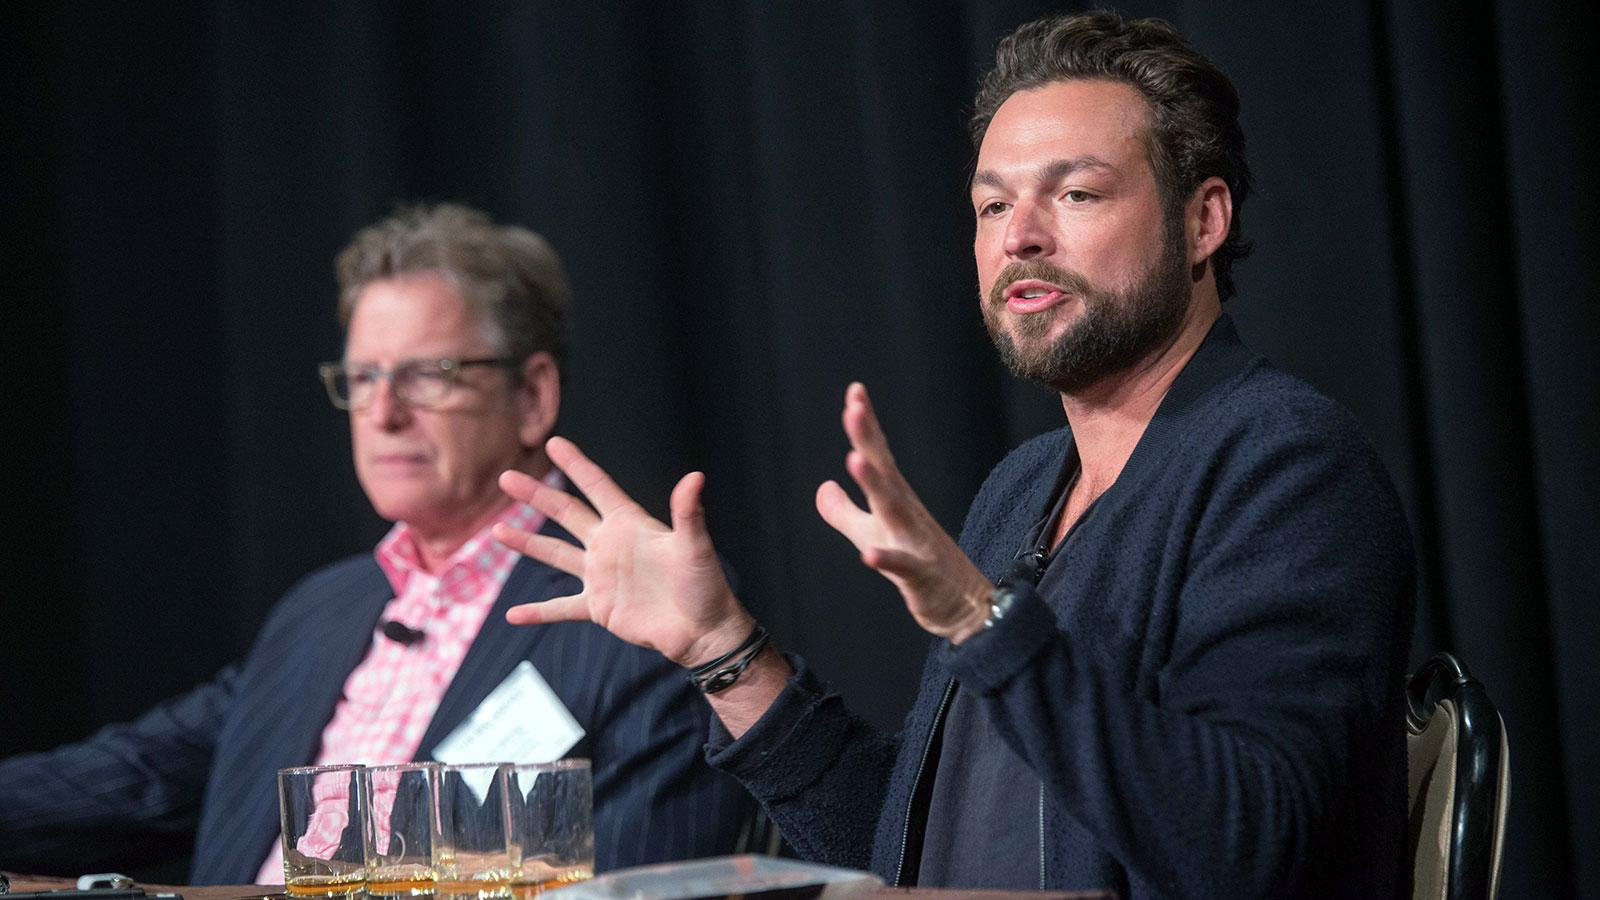 Gabe Cardarella, North American Whisky Ambassador at Bacardi, joined Bettridge up on the stage for the seminar.